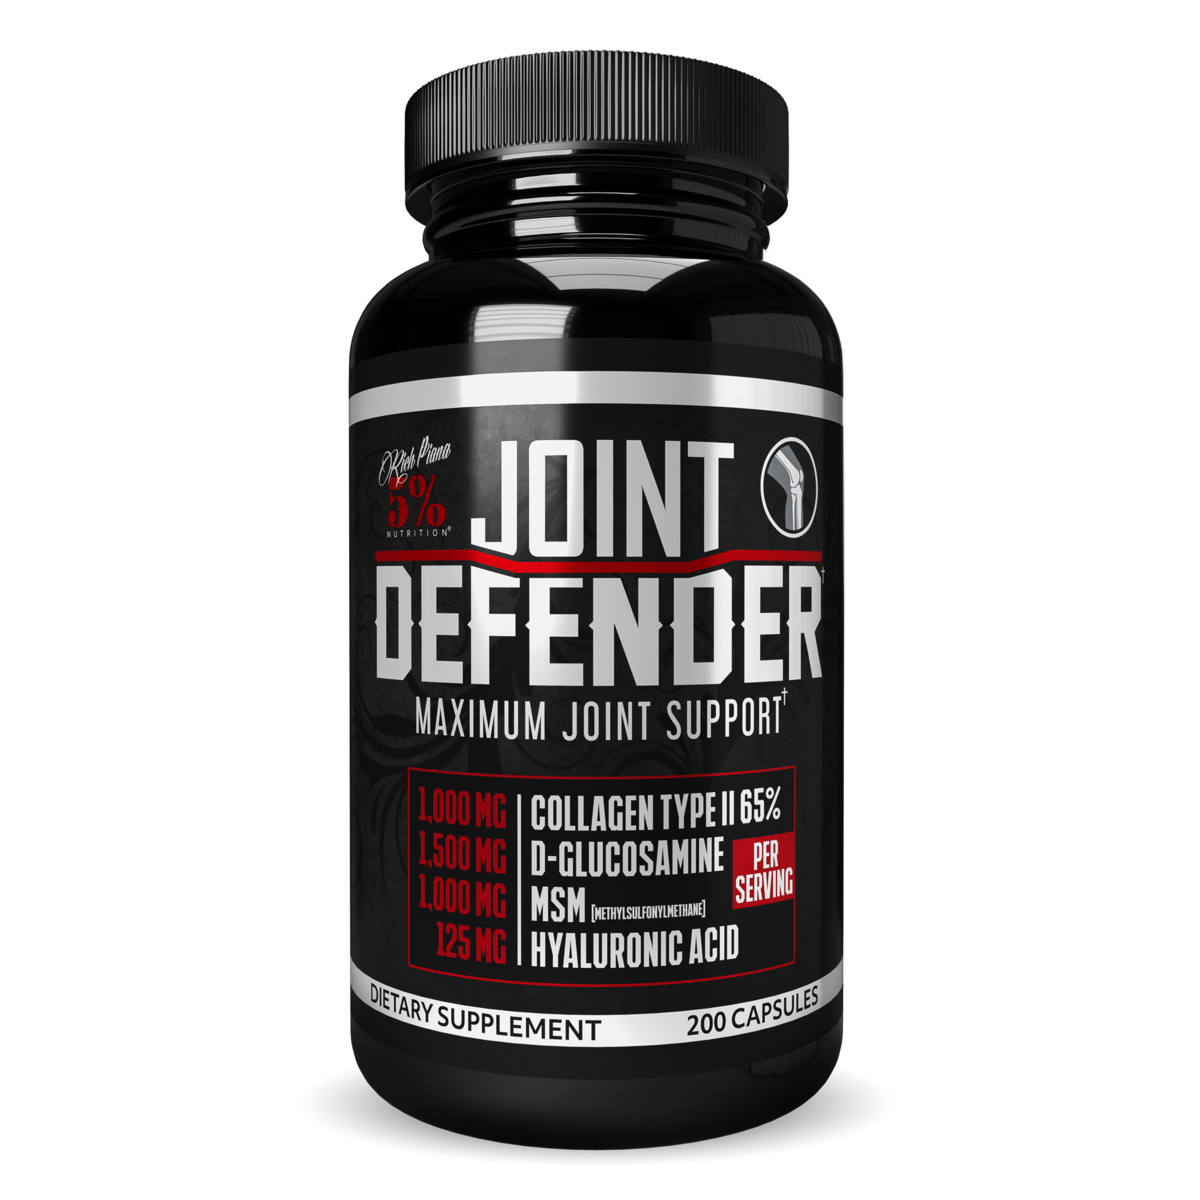 Joint Defender 5% Nutrition